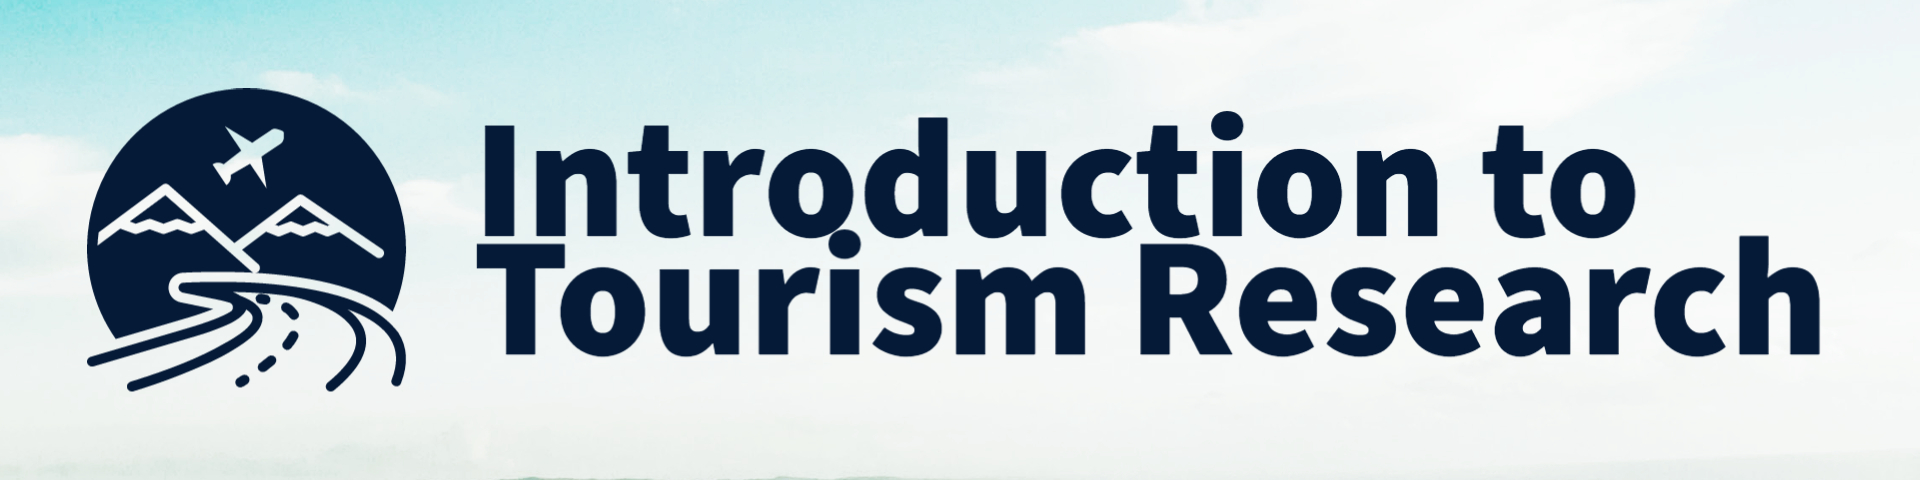 introduction to tourism research